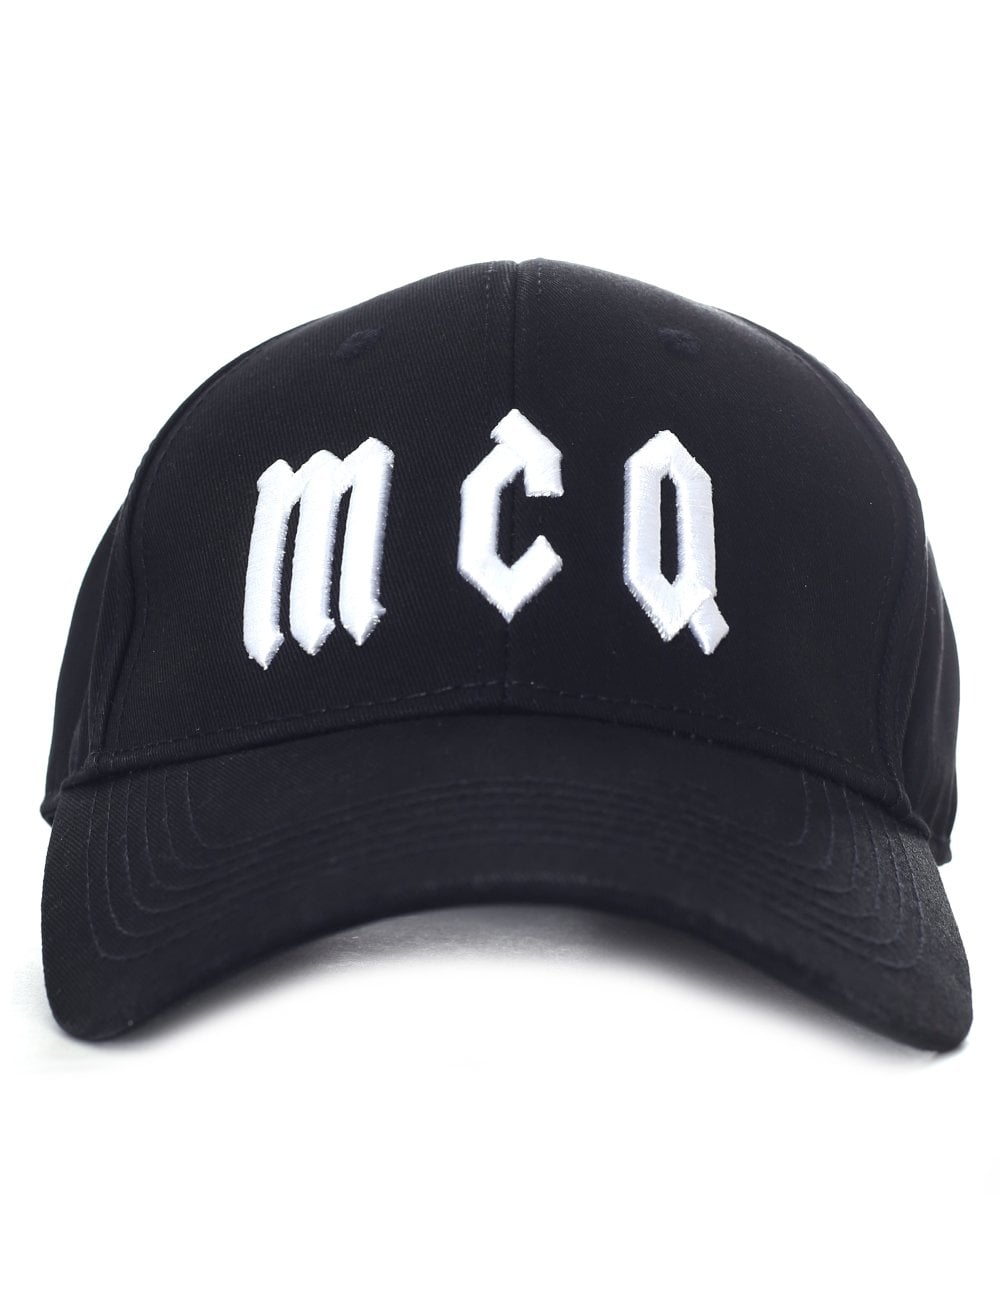 ... McQ by Alexander McQueen Men s Logo Baseball Cap. Tap image to zoom.  Men  039 s Logo Baseball Cap · Men  039 s Logo Baseball Cap 2ac67c655cf8